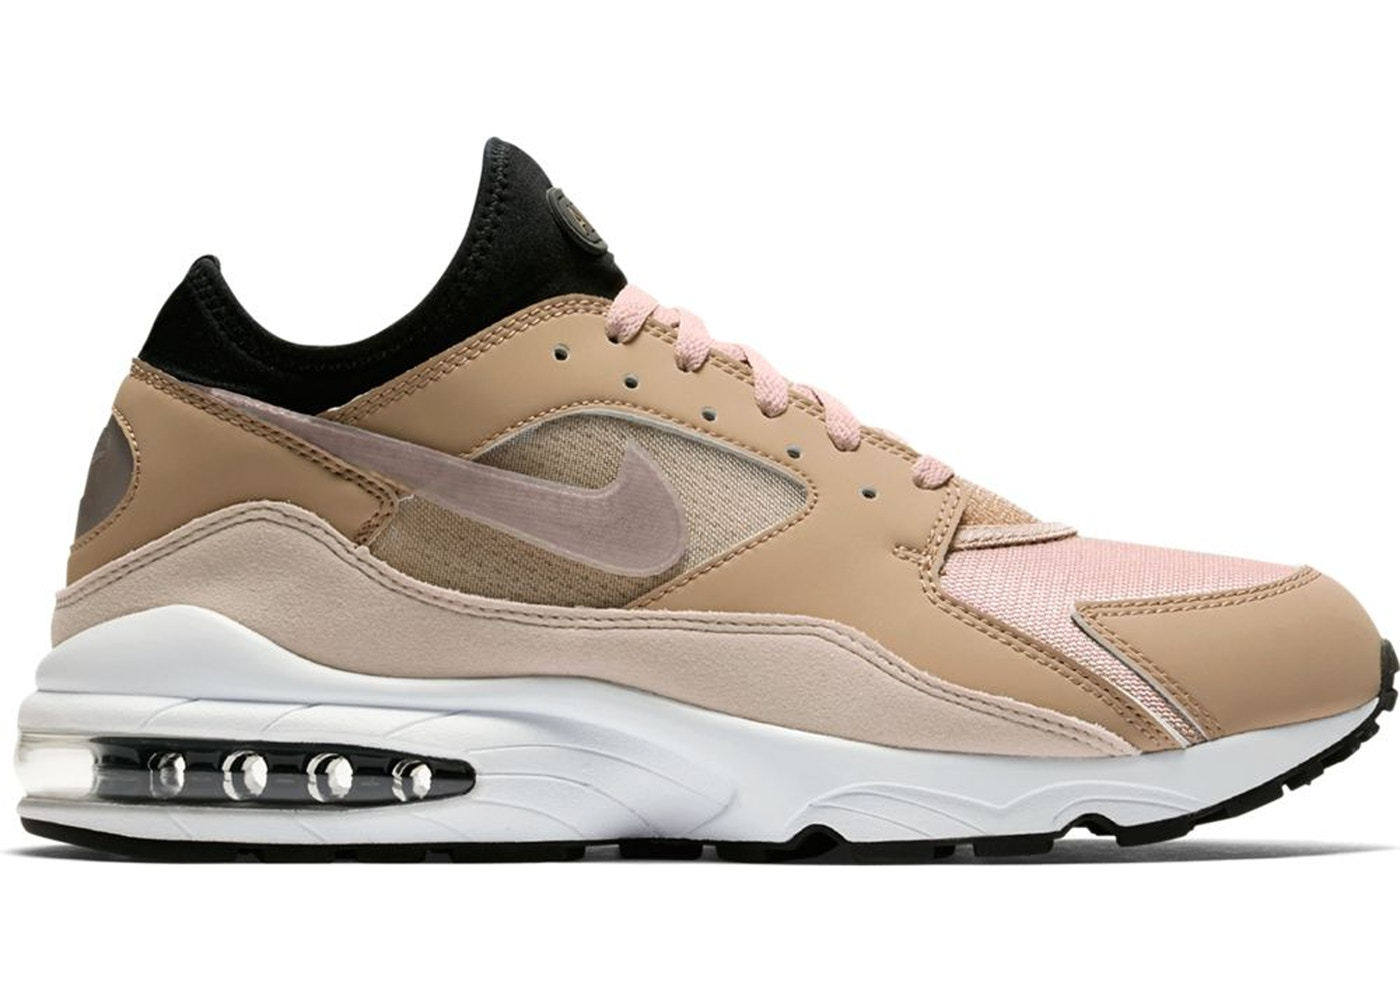 premium selection 84876 67df9 Air Max 93 Sepia Stone